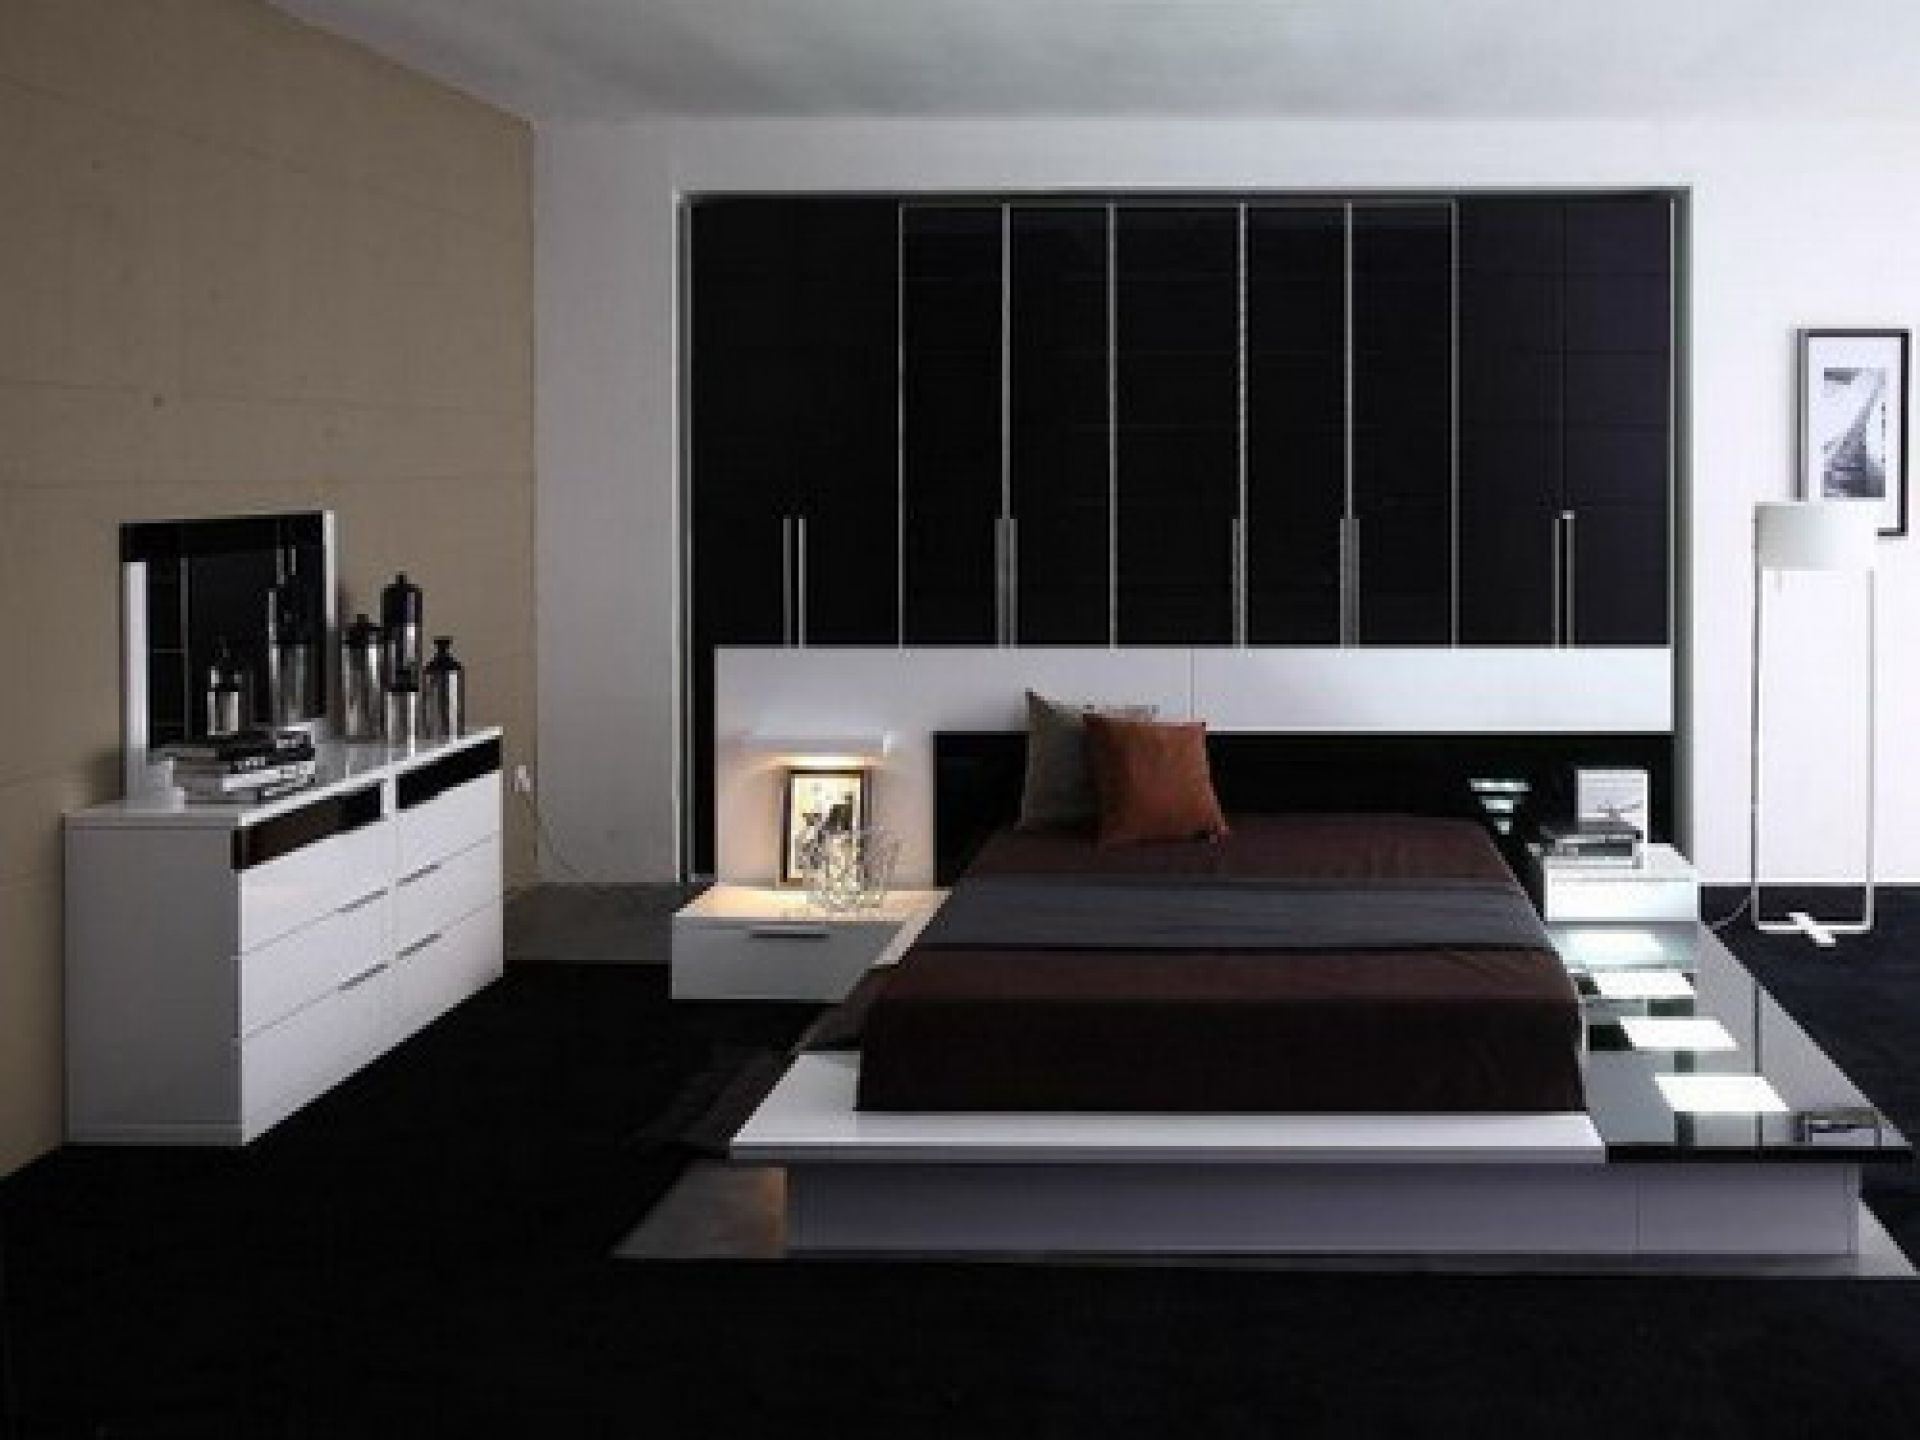 Contemporary White Gloss Dresser Bedroom Cabinets As Well As Black Cover  Low Profile Master Bed Frames. Contemporary White Gloss Dresser Bedroom Cabinets As Well As Black